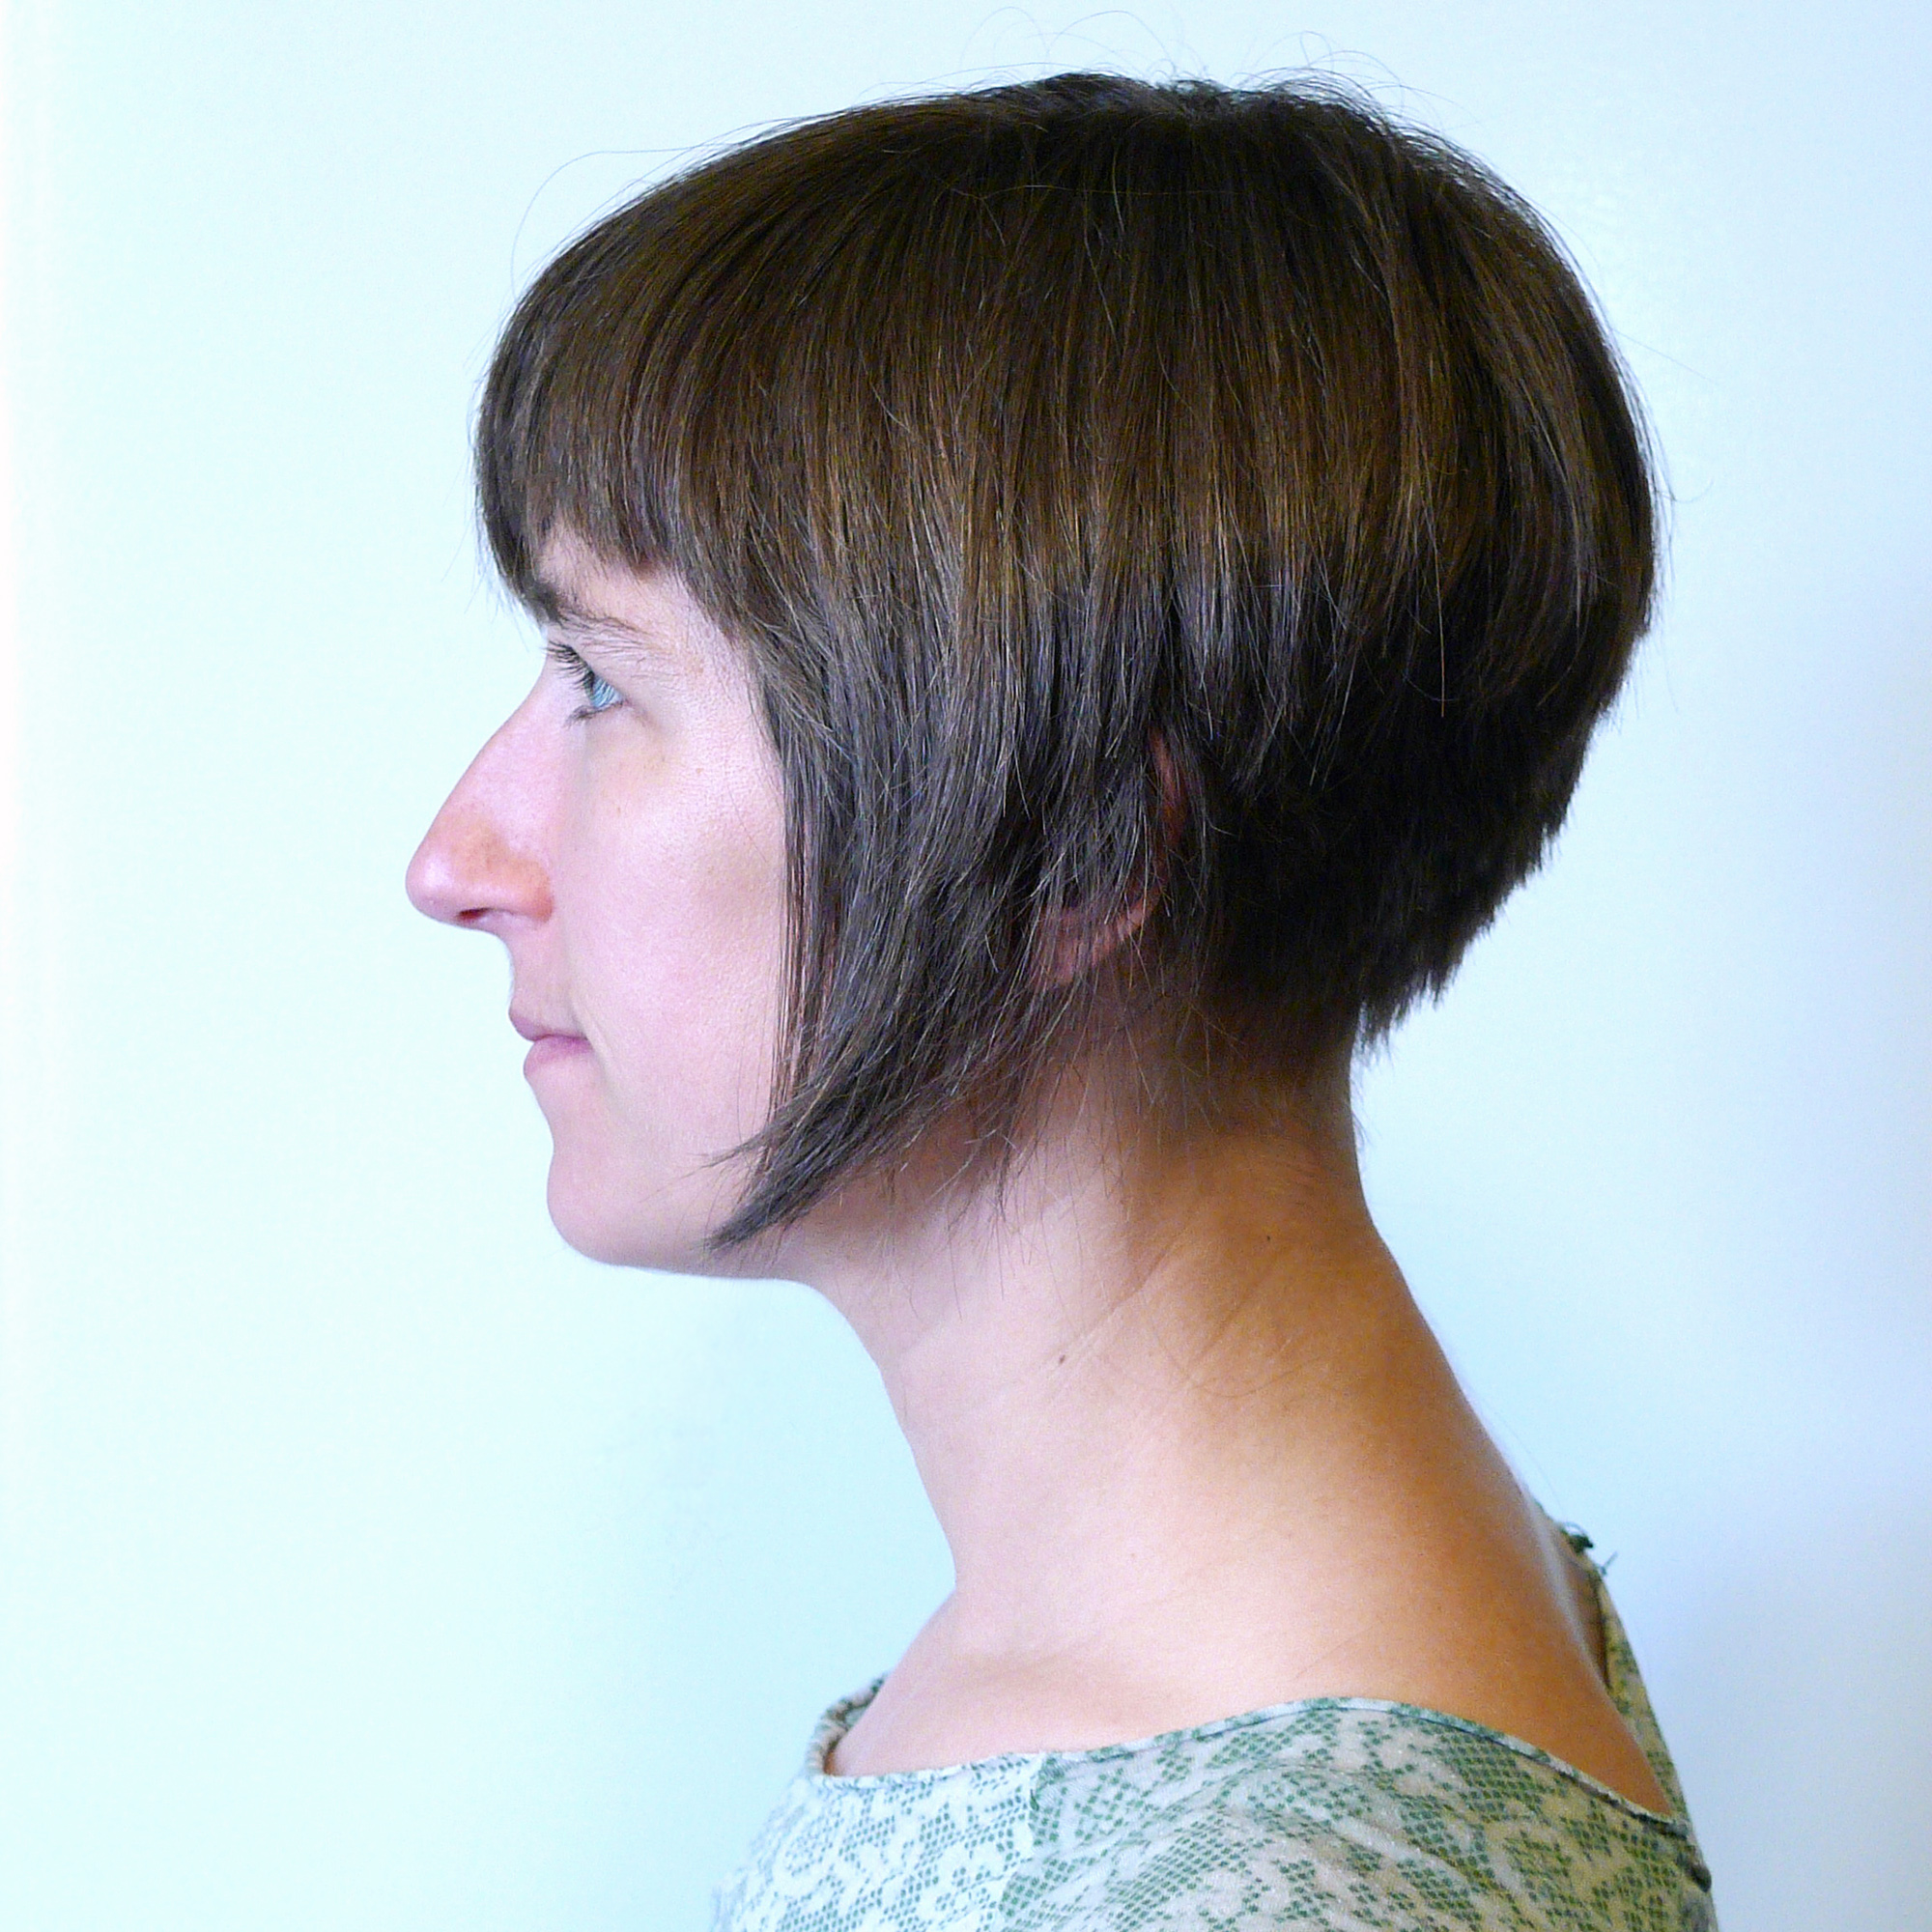 File:Inverted bob haircut.jpg - Wikimedia Commons